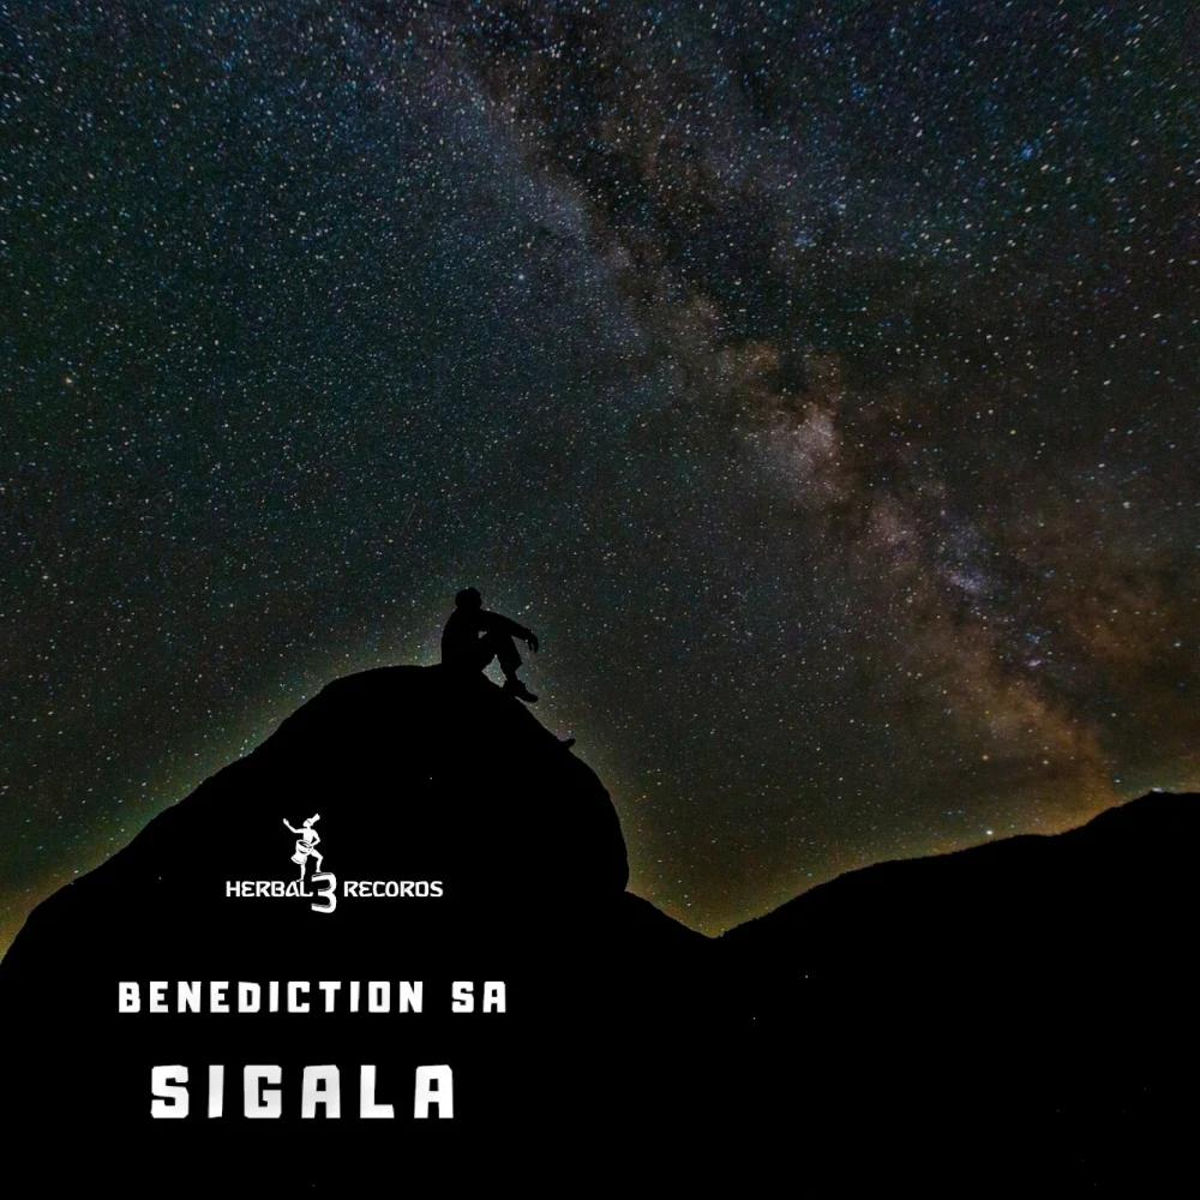 Benediction SA - Sigala EP